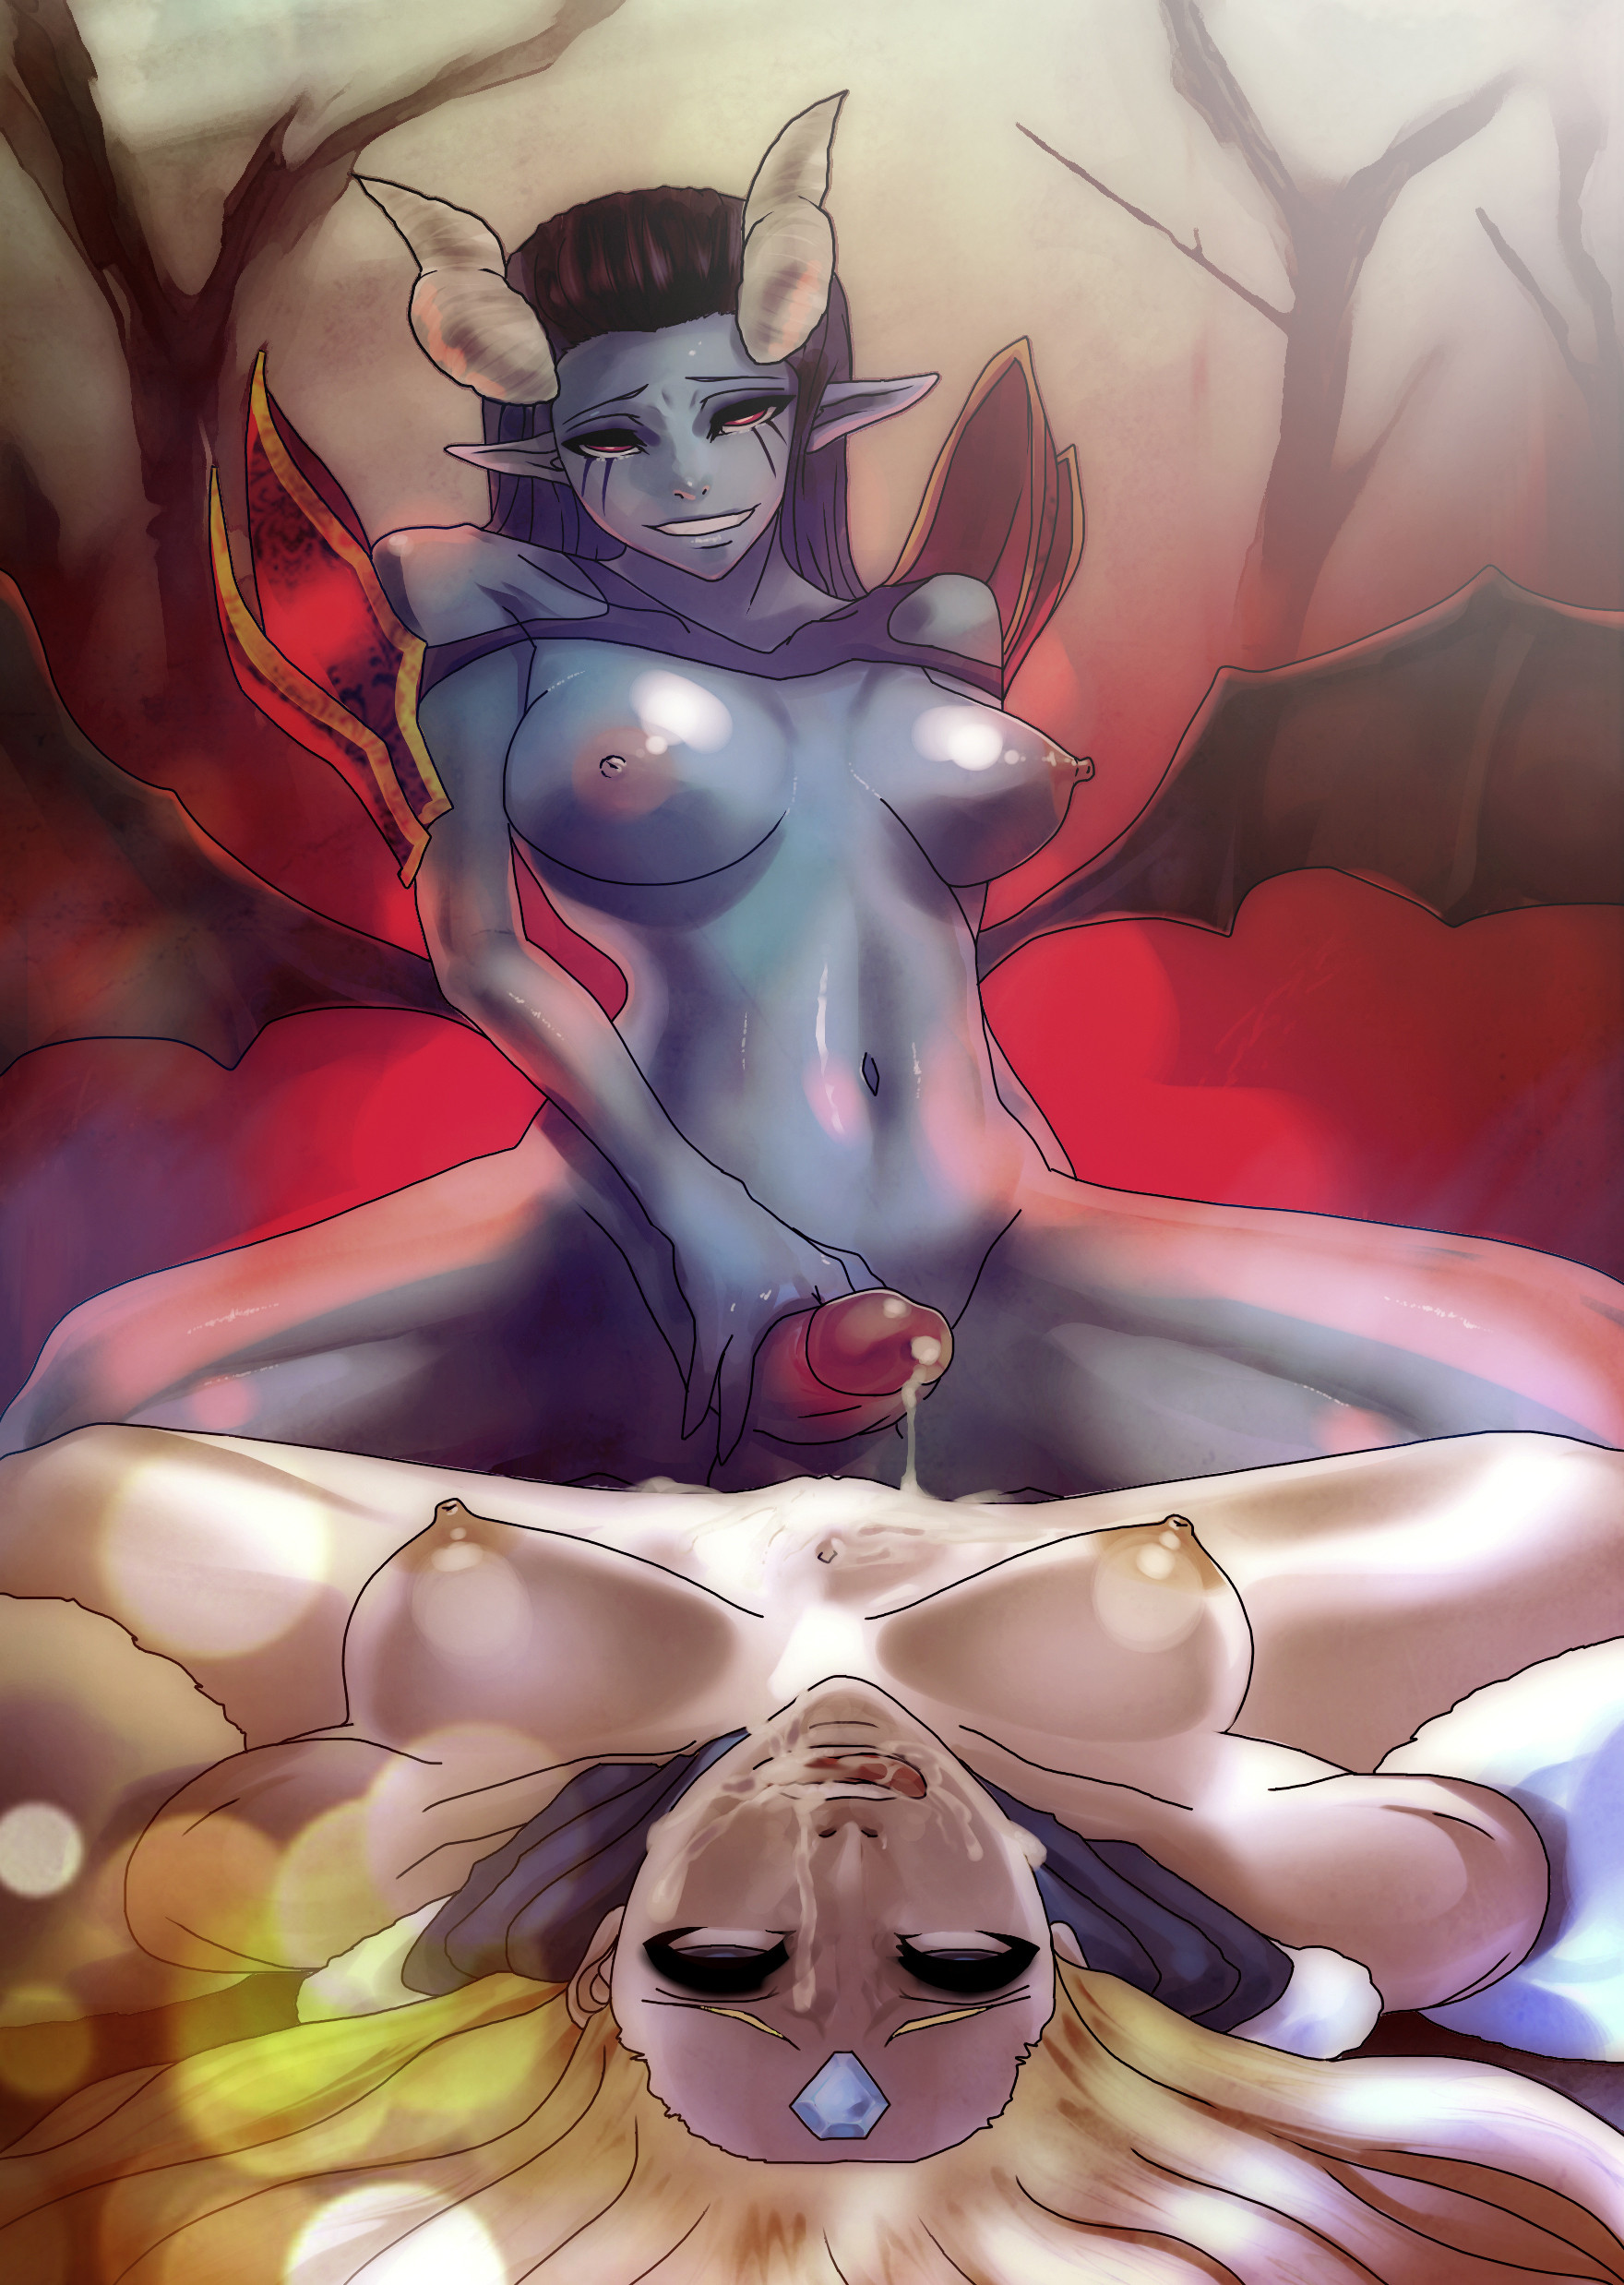 Naked dota female character hentai erotic pic